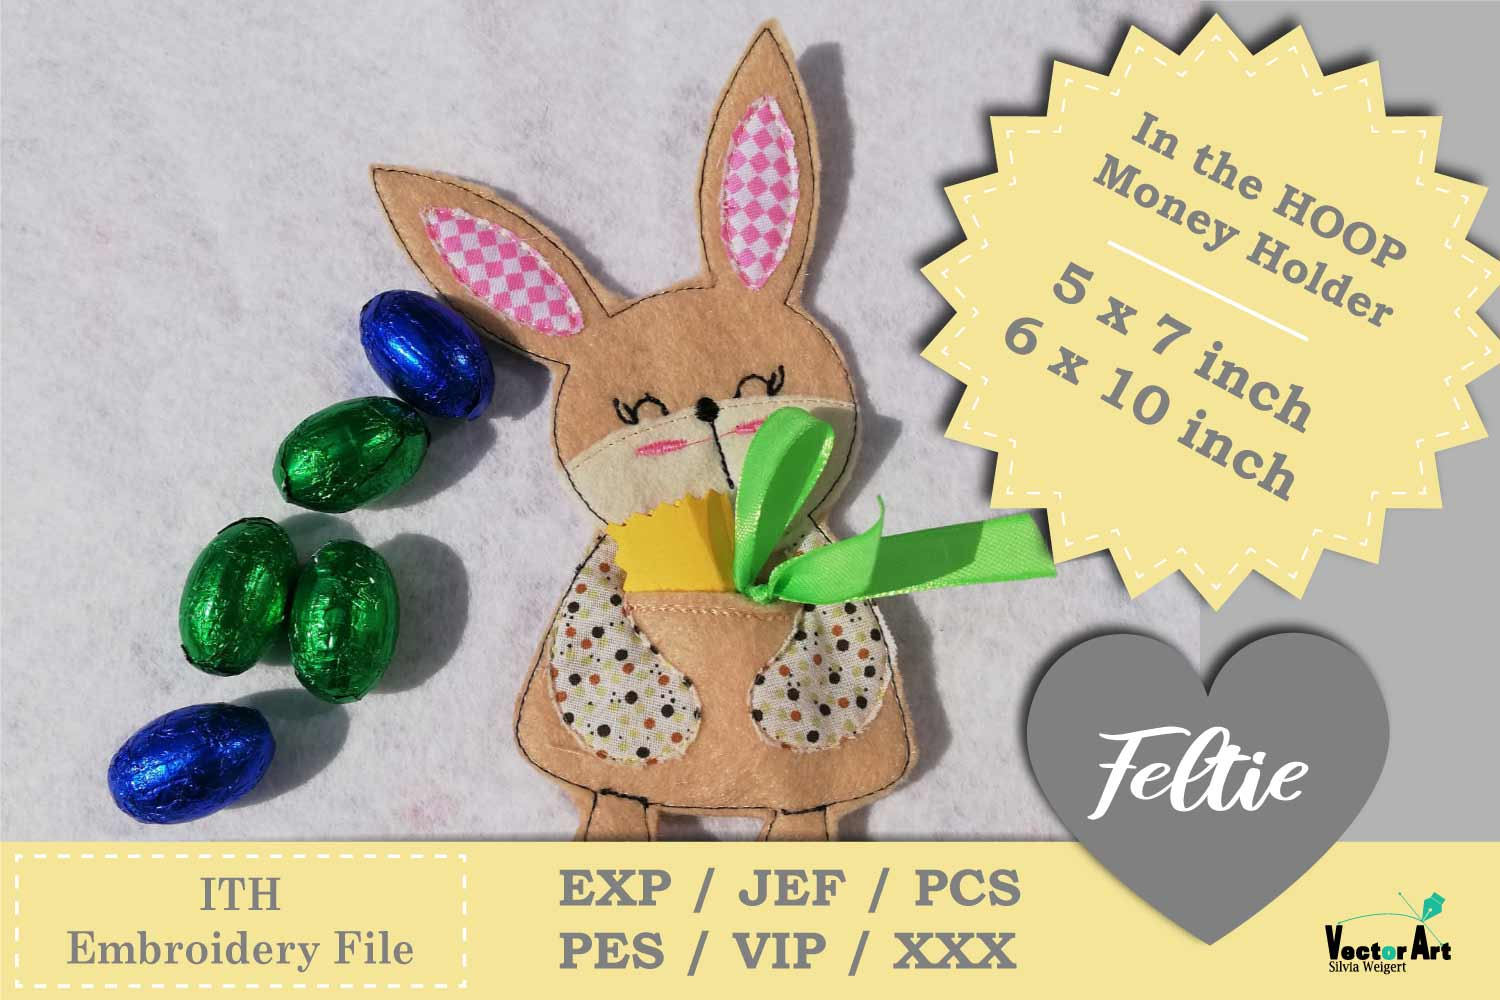 ITH - Money Bunny Gift holder - Embroidery File example image 2